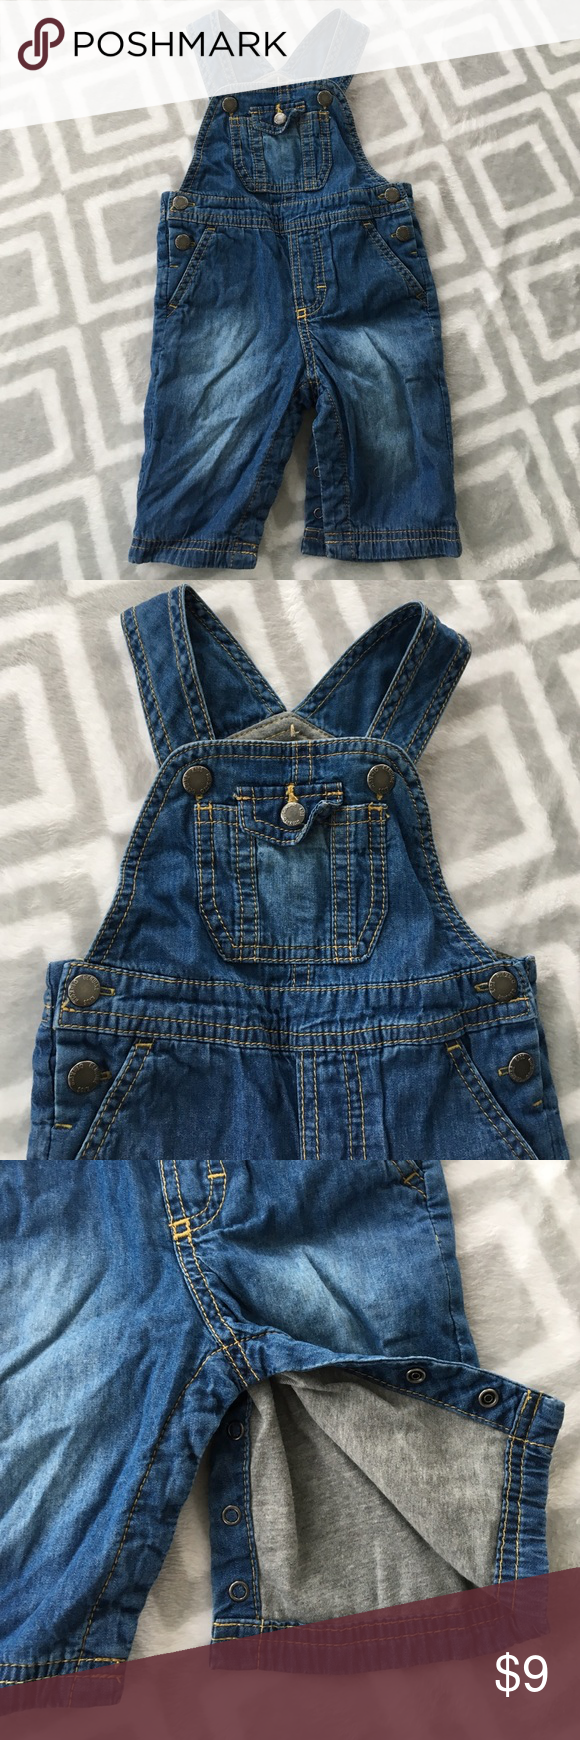 OshKosh overalls These overalls are adorable and light weight. Snaps all over for easy changing. Snaps for on pants for easy diaper change as well as snaps for the overall part and the sides -- as shown in pictures. Genuine Kids from OshKosh Bottoms Overalls